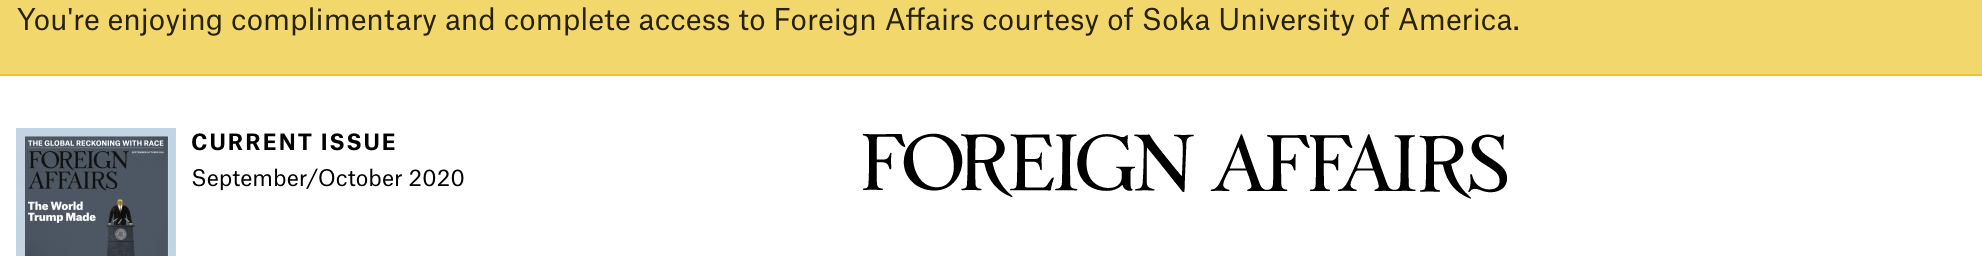 Foreign Affairs banner image